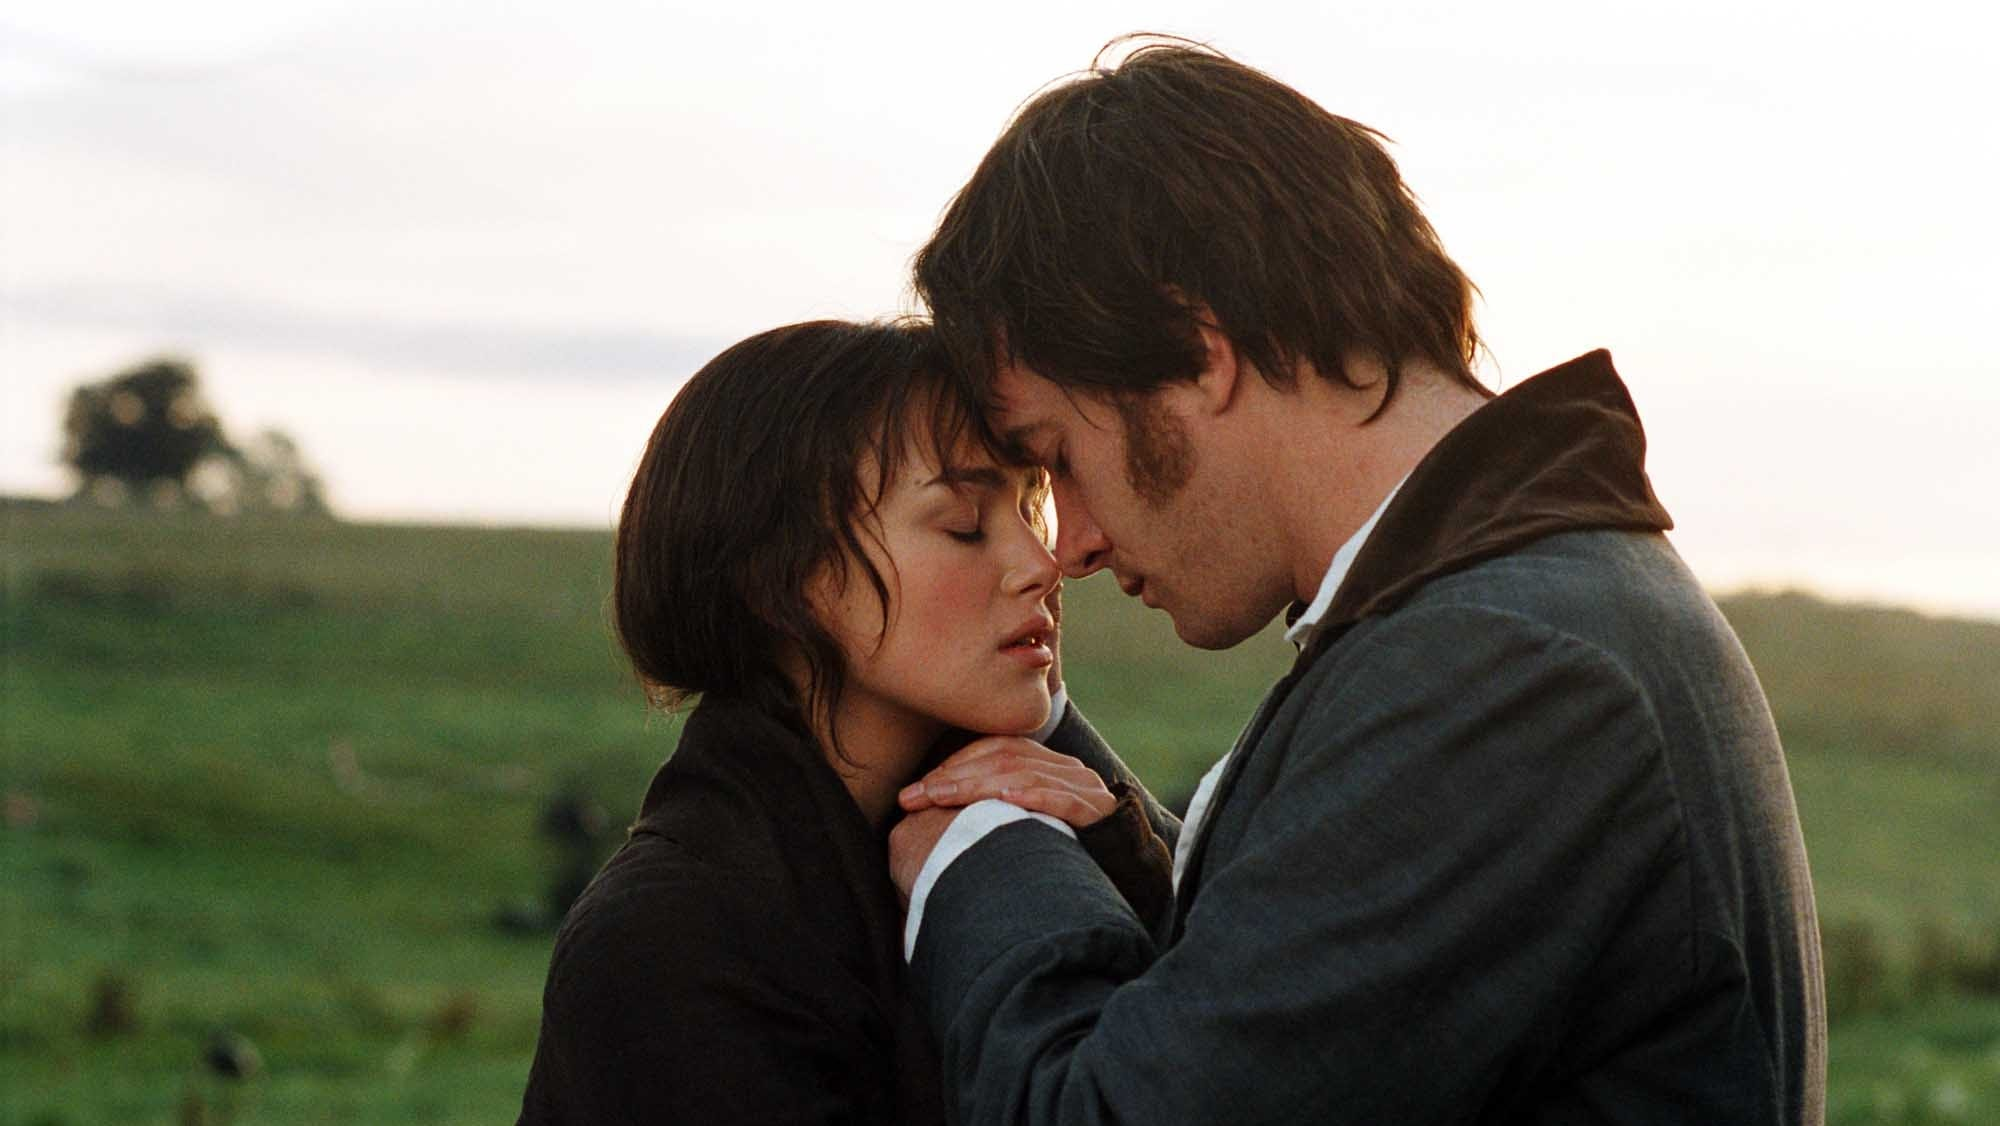 10 Romantic Movies If You Liked Pride and Prejudice